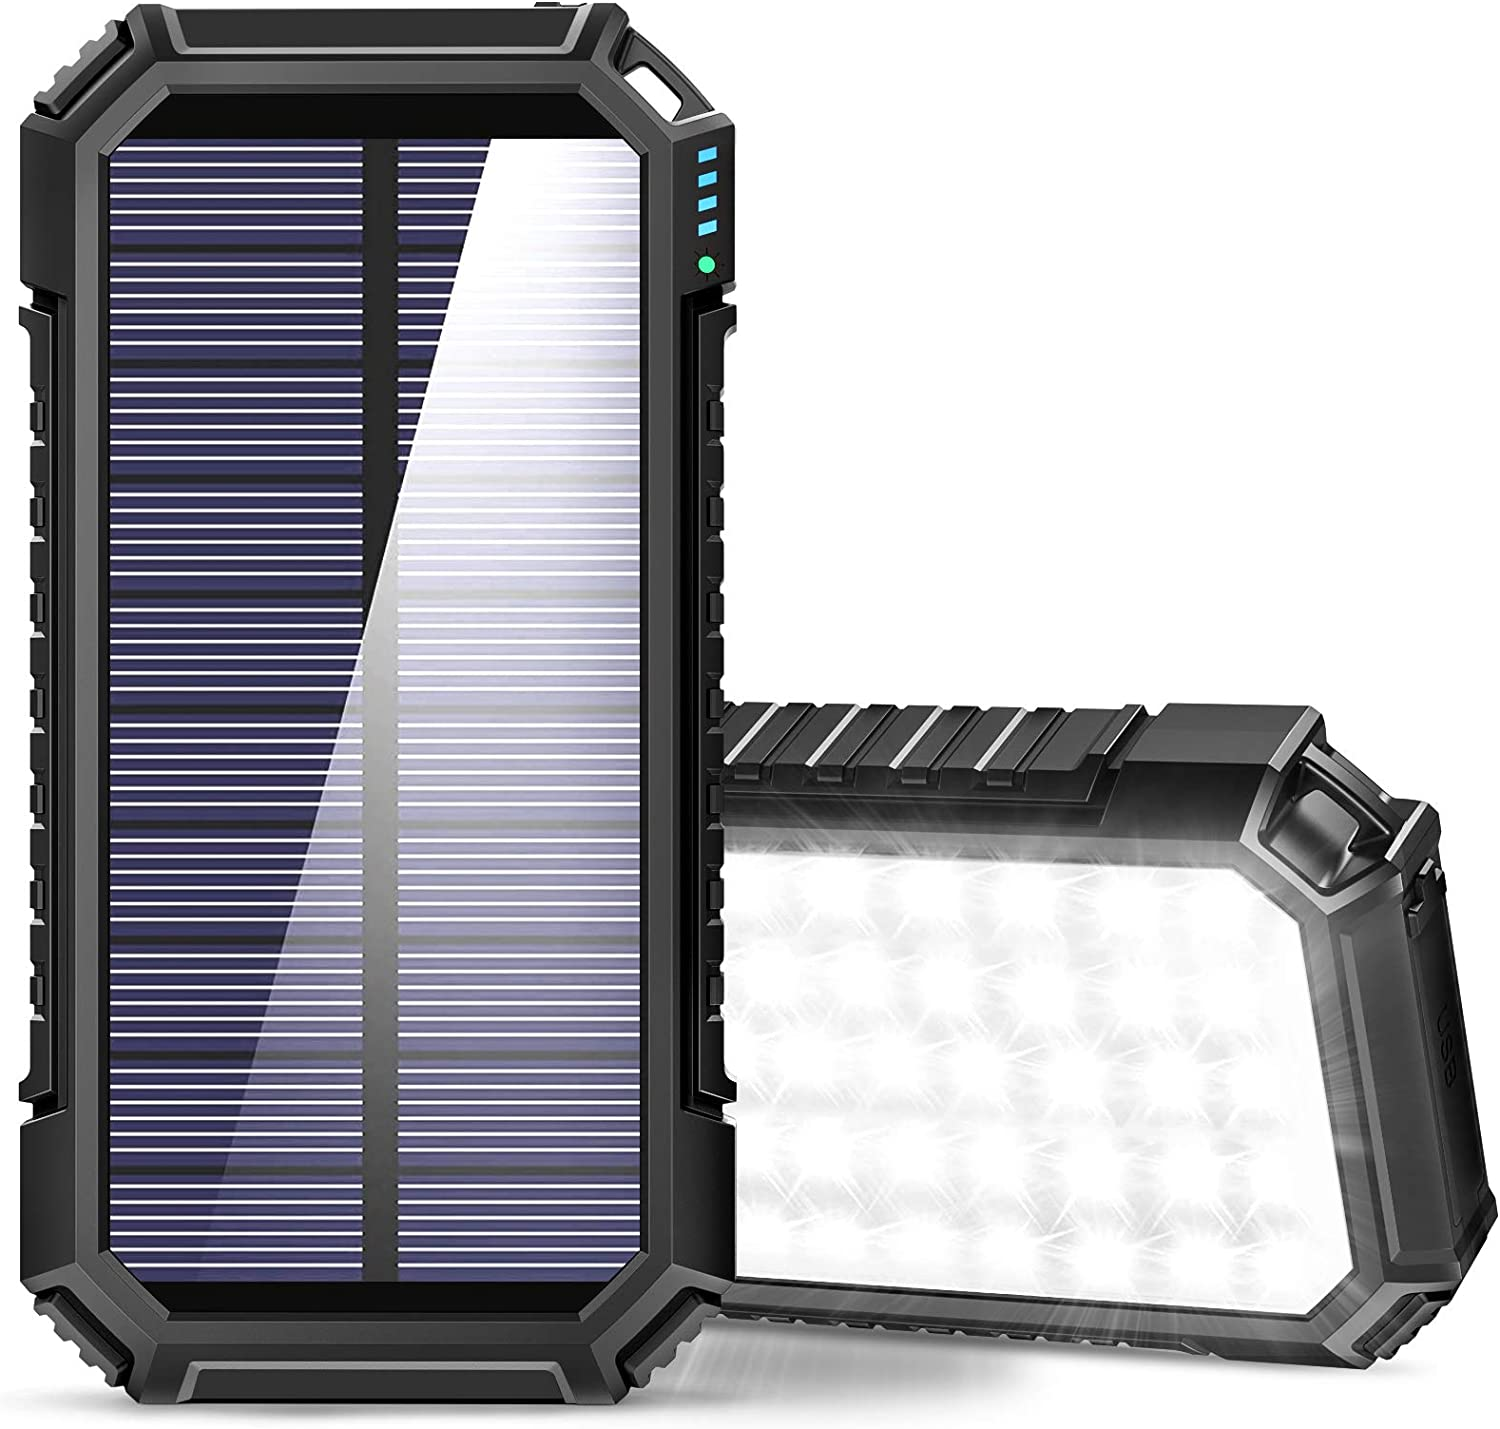 SOARAISE Solar Power Bank 26800mAh, Solar Charger with 3 USB Outputs and 60 LEDs, Quick Charging External Battery Pack for iPhone, Samsung, Camping and Outdoor